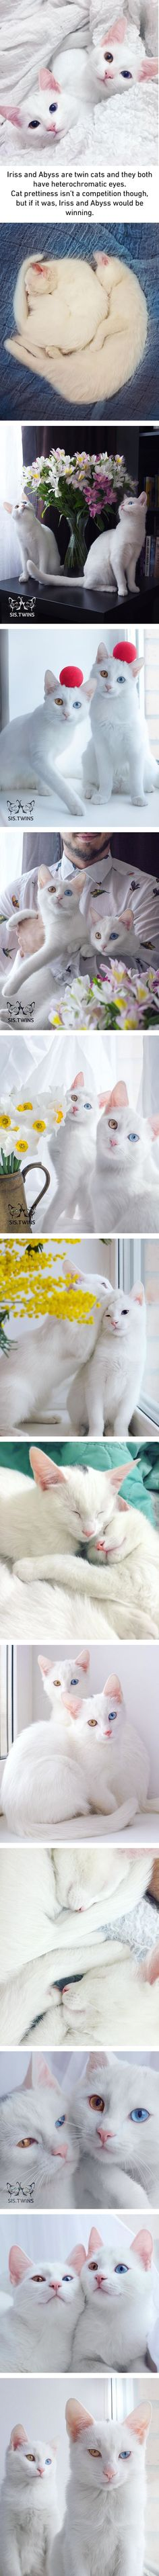 These Photogenic Twin Cats Are Prettier Than Most Of Us - 9GAG